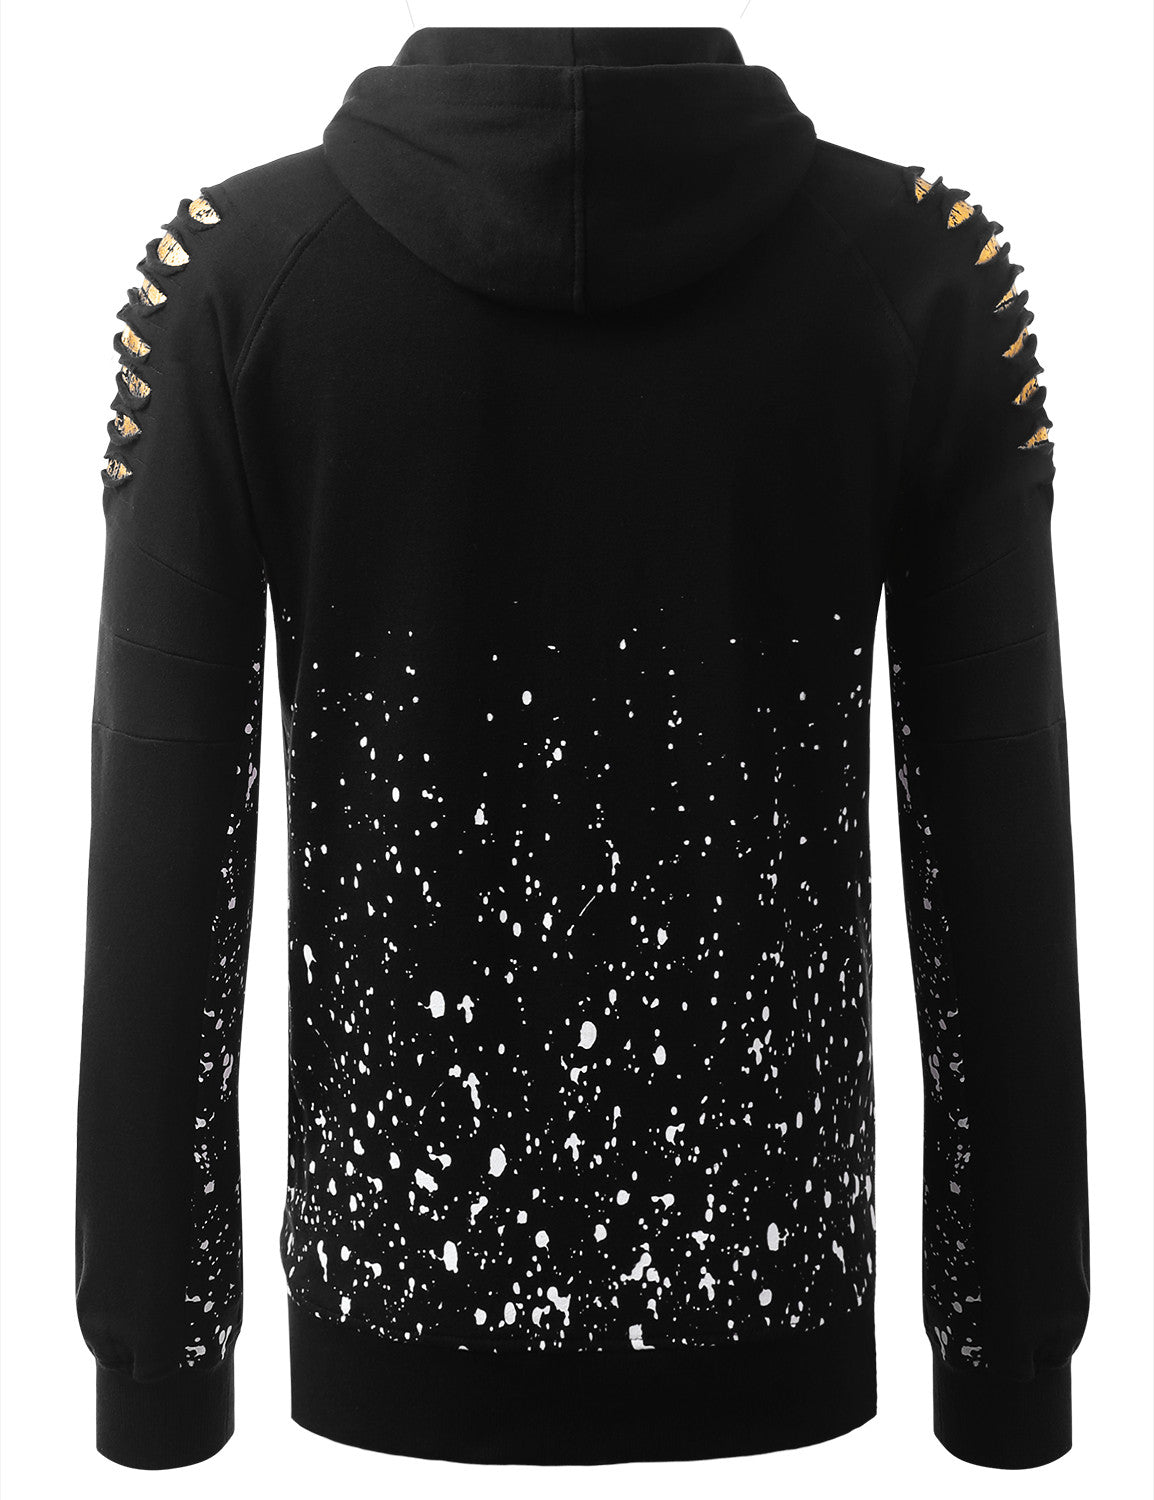 BLACKGOLD Bull Splatter Long-Sleeve Hoodie Jackets - URBANCREWS